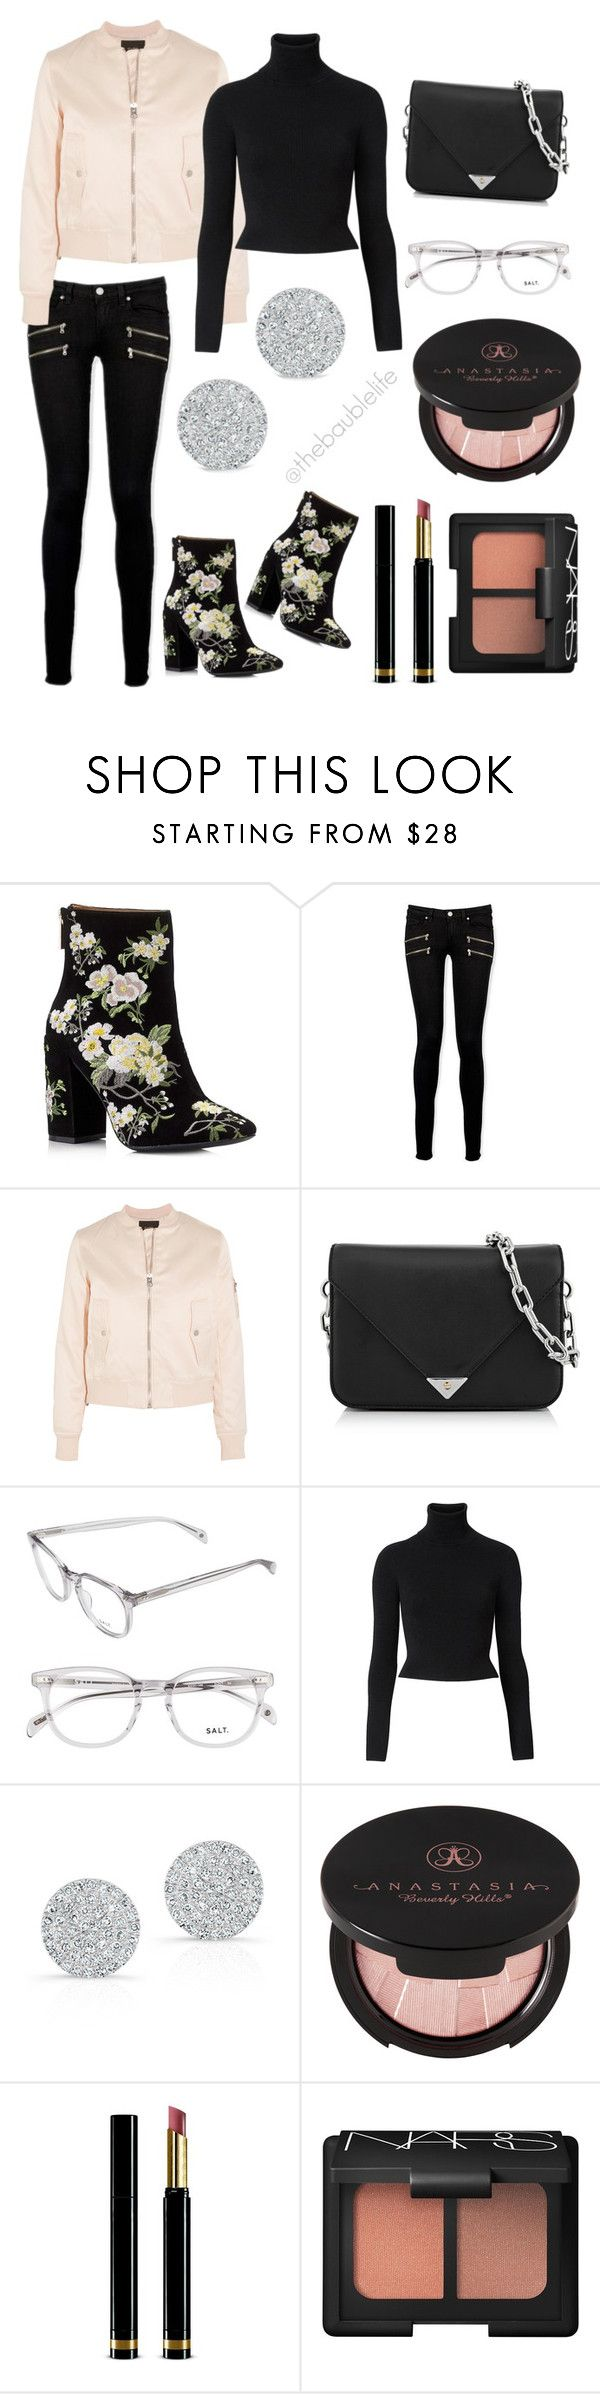 """Date Style - Miss Selfridge Athena Floral Embroidered Boot"" by thebaublelife ❤ liked on Polyvore featuring Miss Selfridge, Paige Denim, Maje, Alexander Wang, Witchery, Anne Sisteron, Anastasia Beverly Hills, Gucci, NARS Cosmetics and Fall"